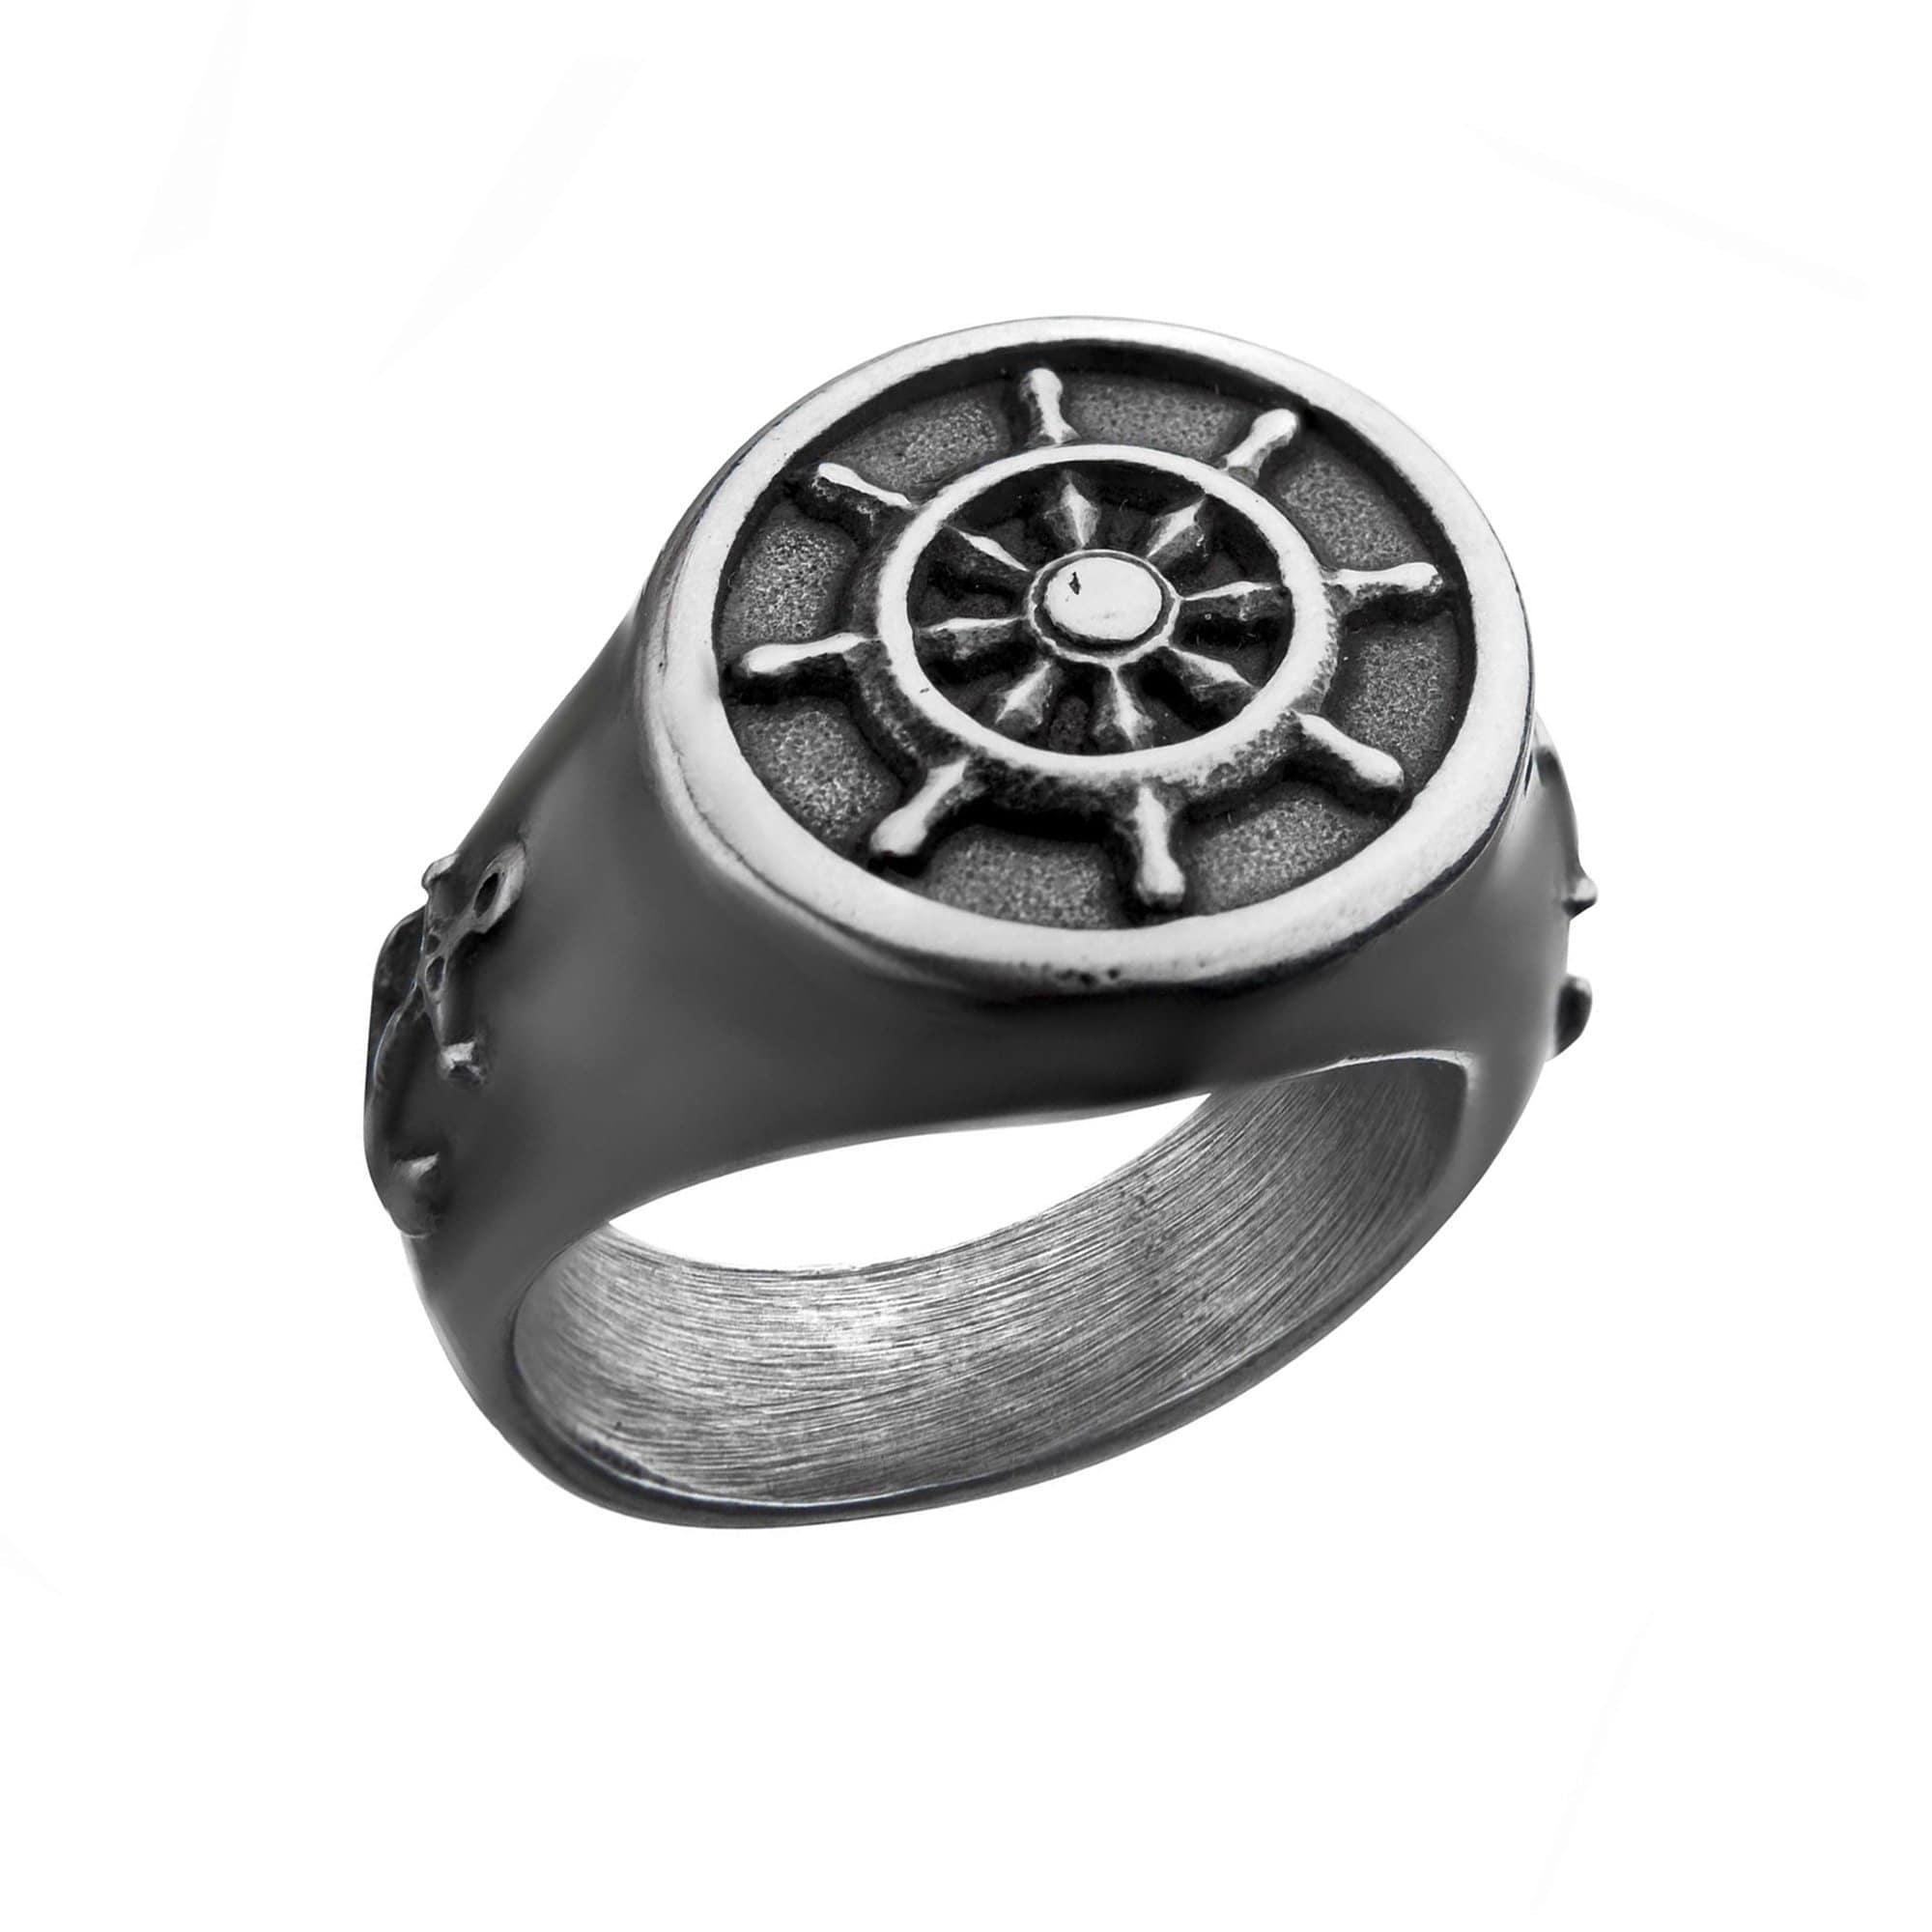 Silver Stainless Steel Oxidized Finish Vintage Anchor & Helm Ring